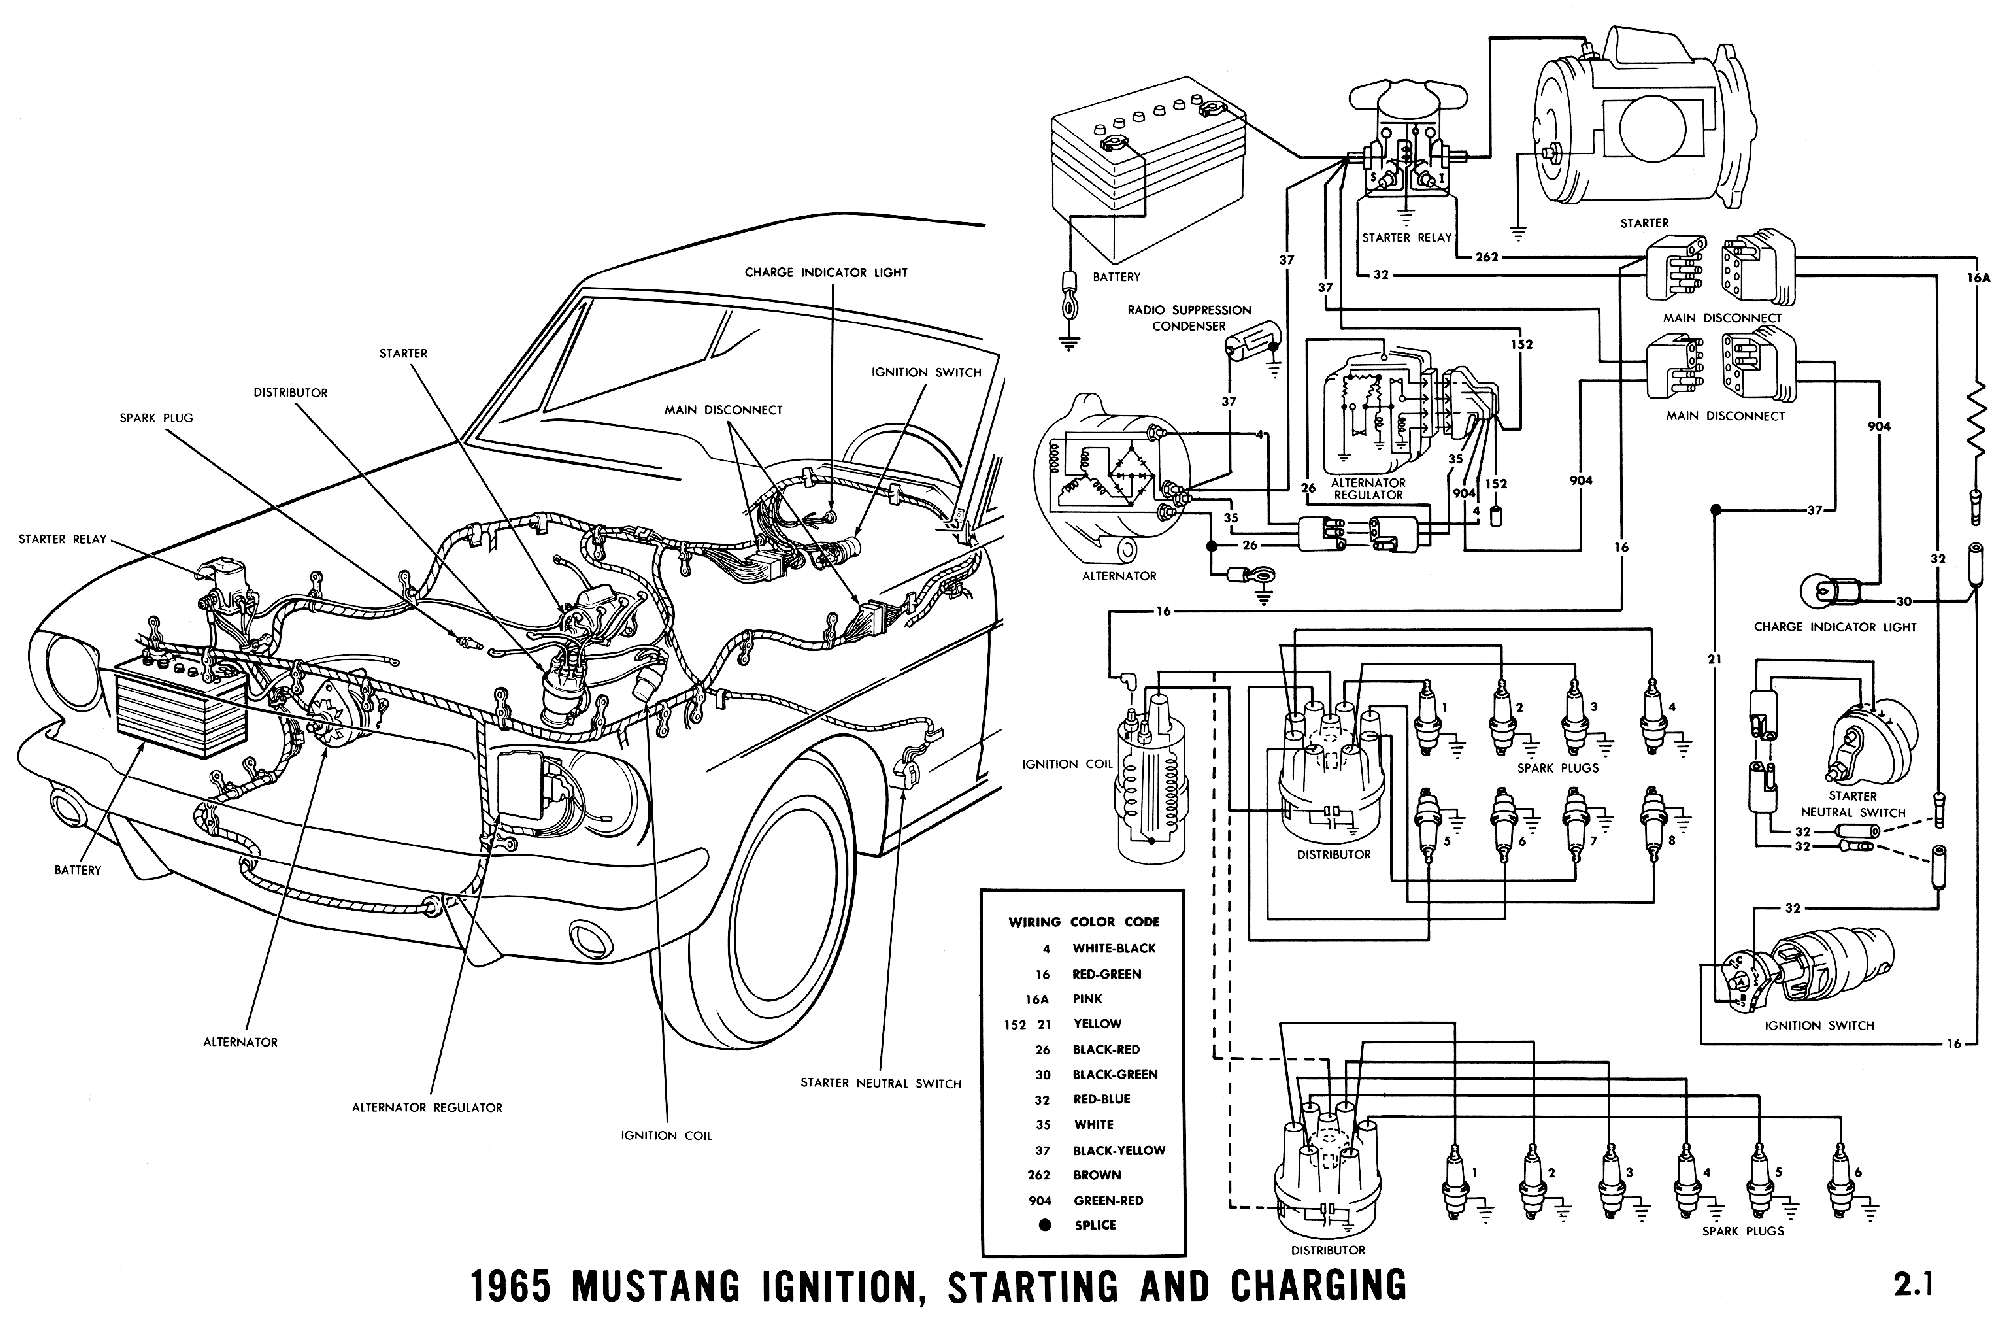 1965 Mustang Wiring Diagrams Average Joe Restoration October 2012 Mercedes Fuse Box Diagram Charging Pictorial And Schematic